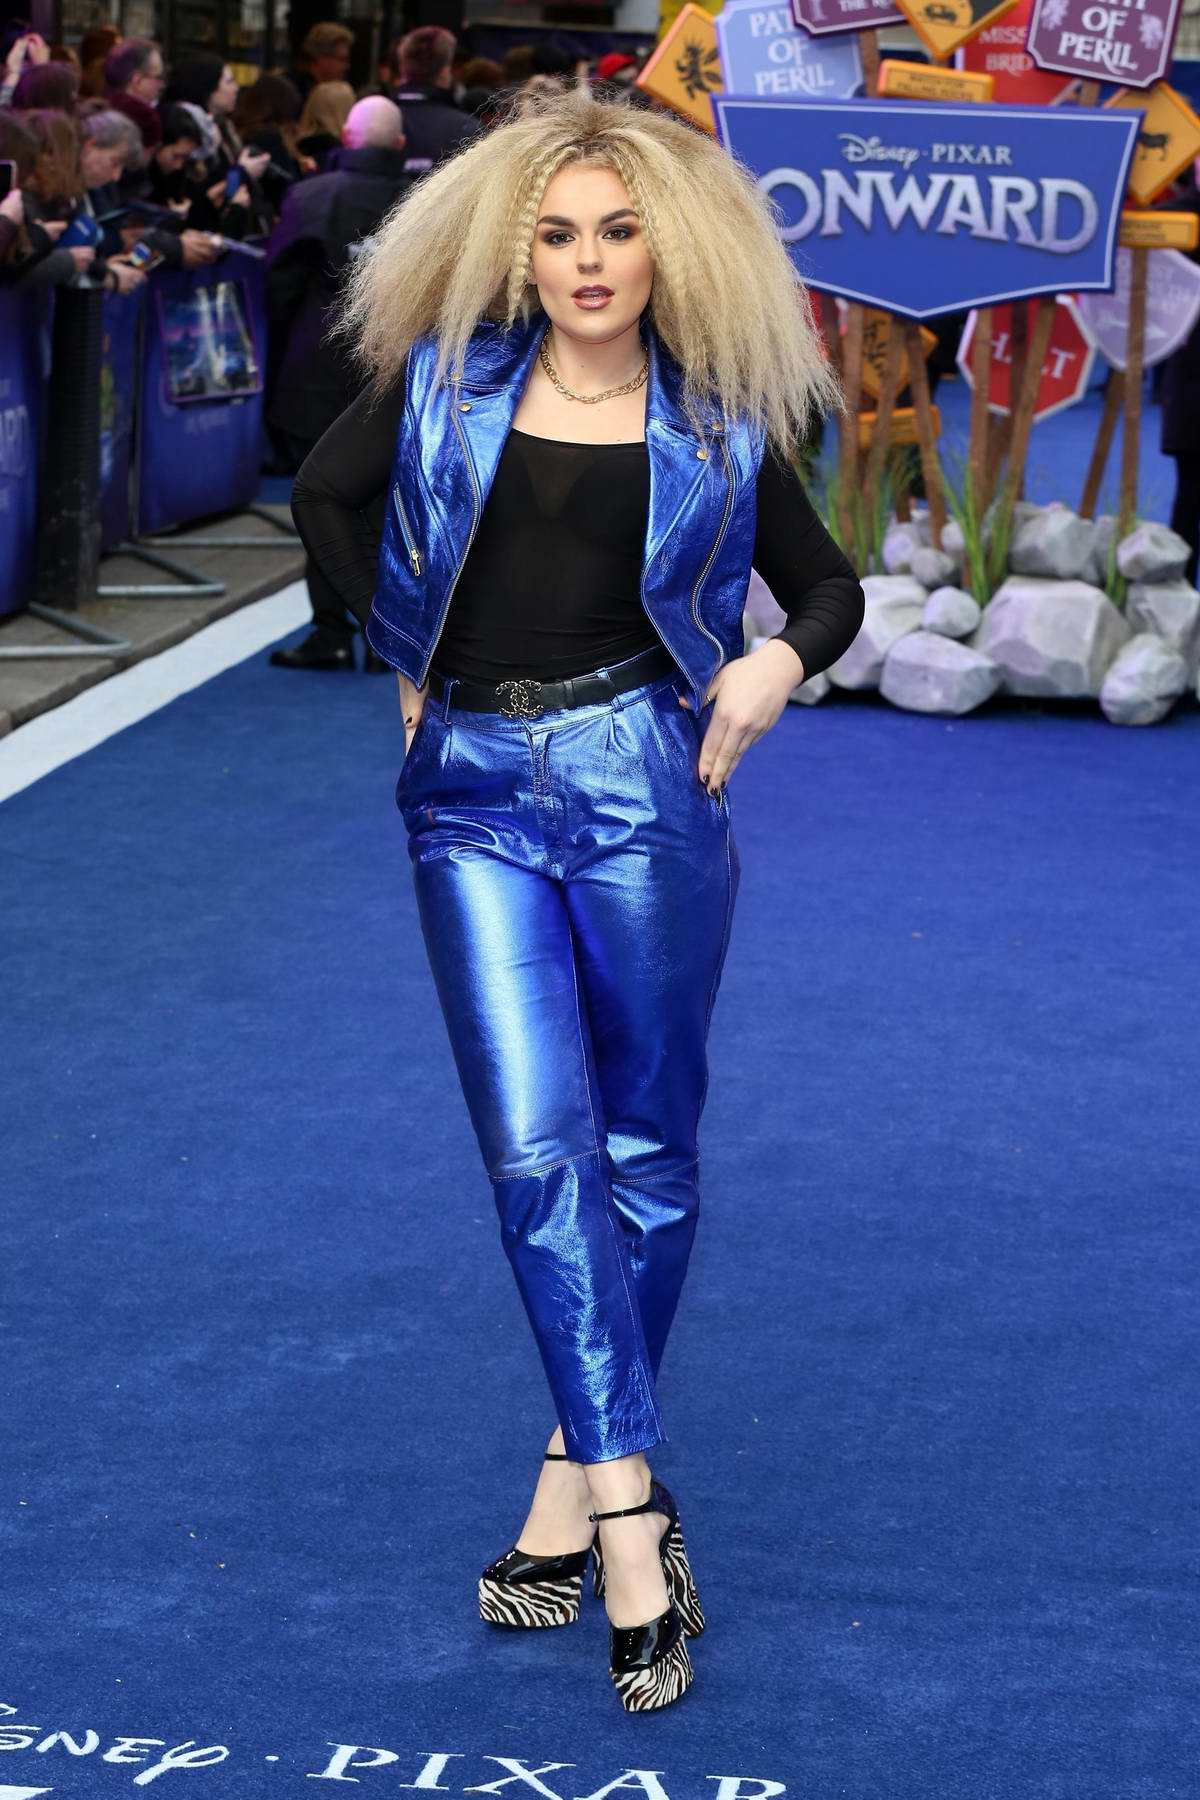 Tallia Storm attends the UK premiere of 'Onward' at Curzon Mayfair in London, UK